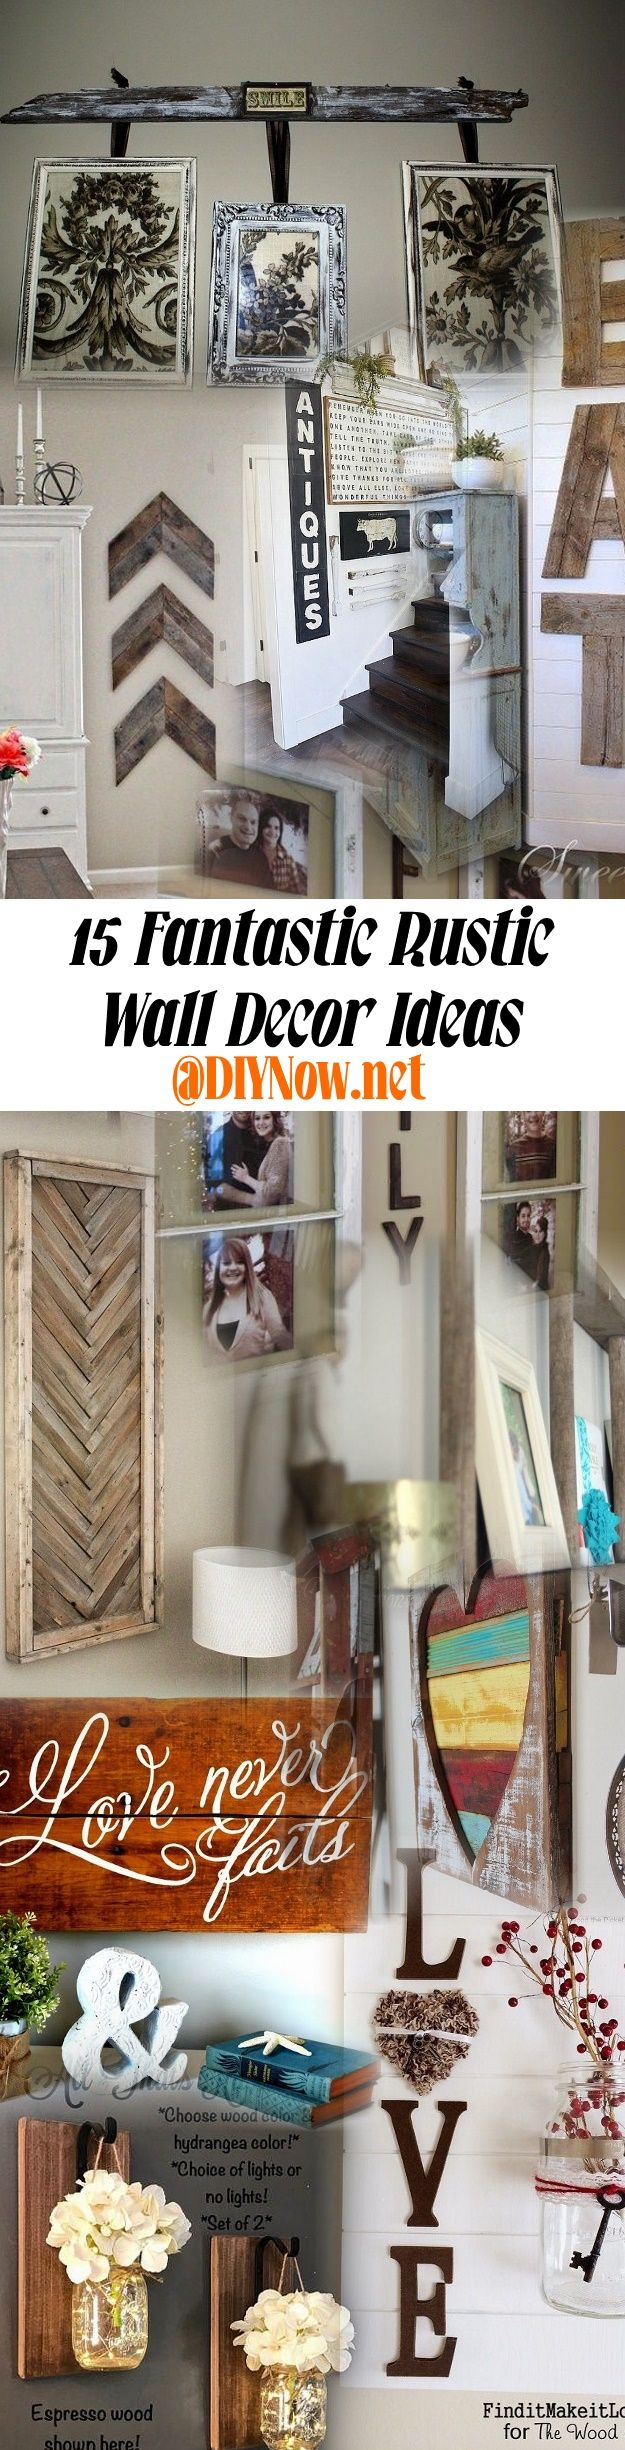 15 Fantastic Rustic Wall Decor Ideas